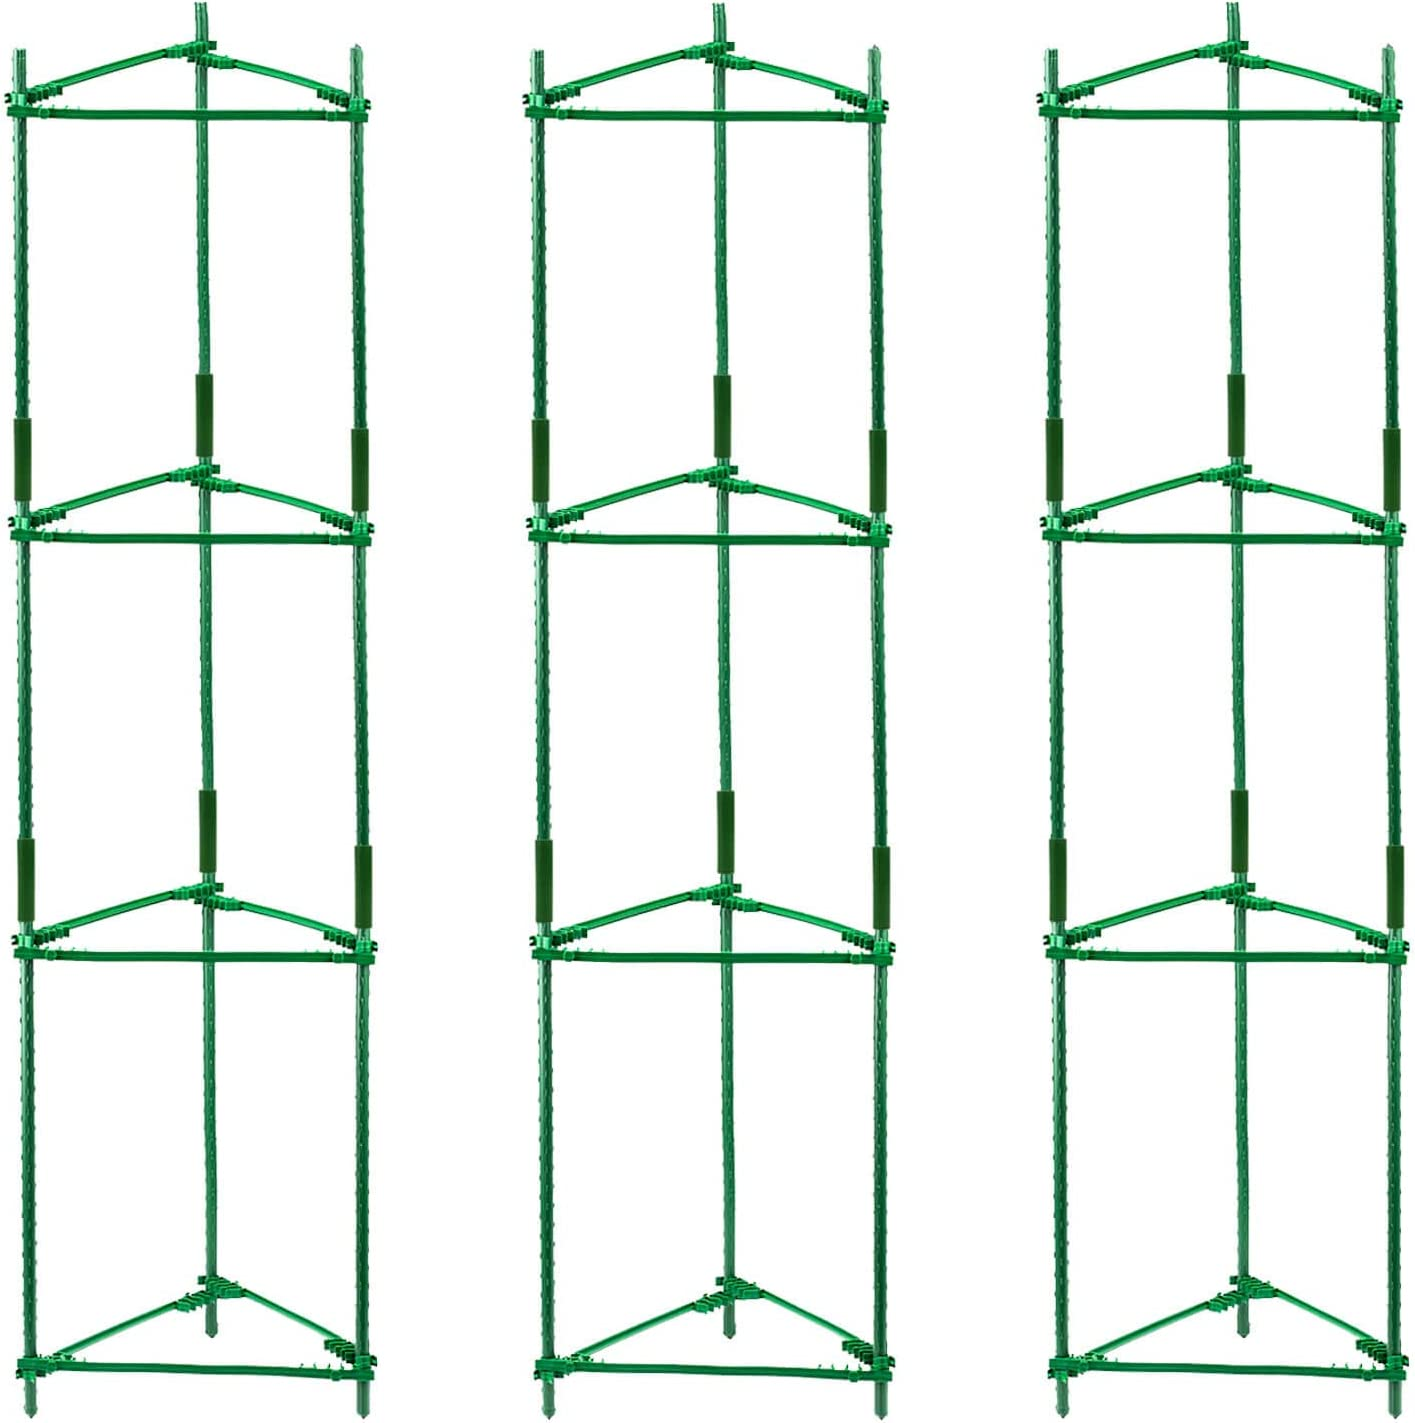 Orgrimmar 3 Pack Tomato Cages Garden Plant Support Stakes Outdoor Vegetable Trellis for Vertical Climbing Plant